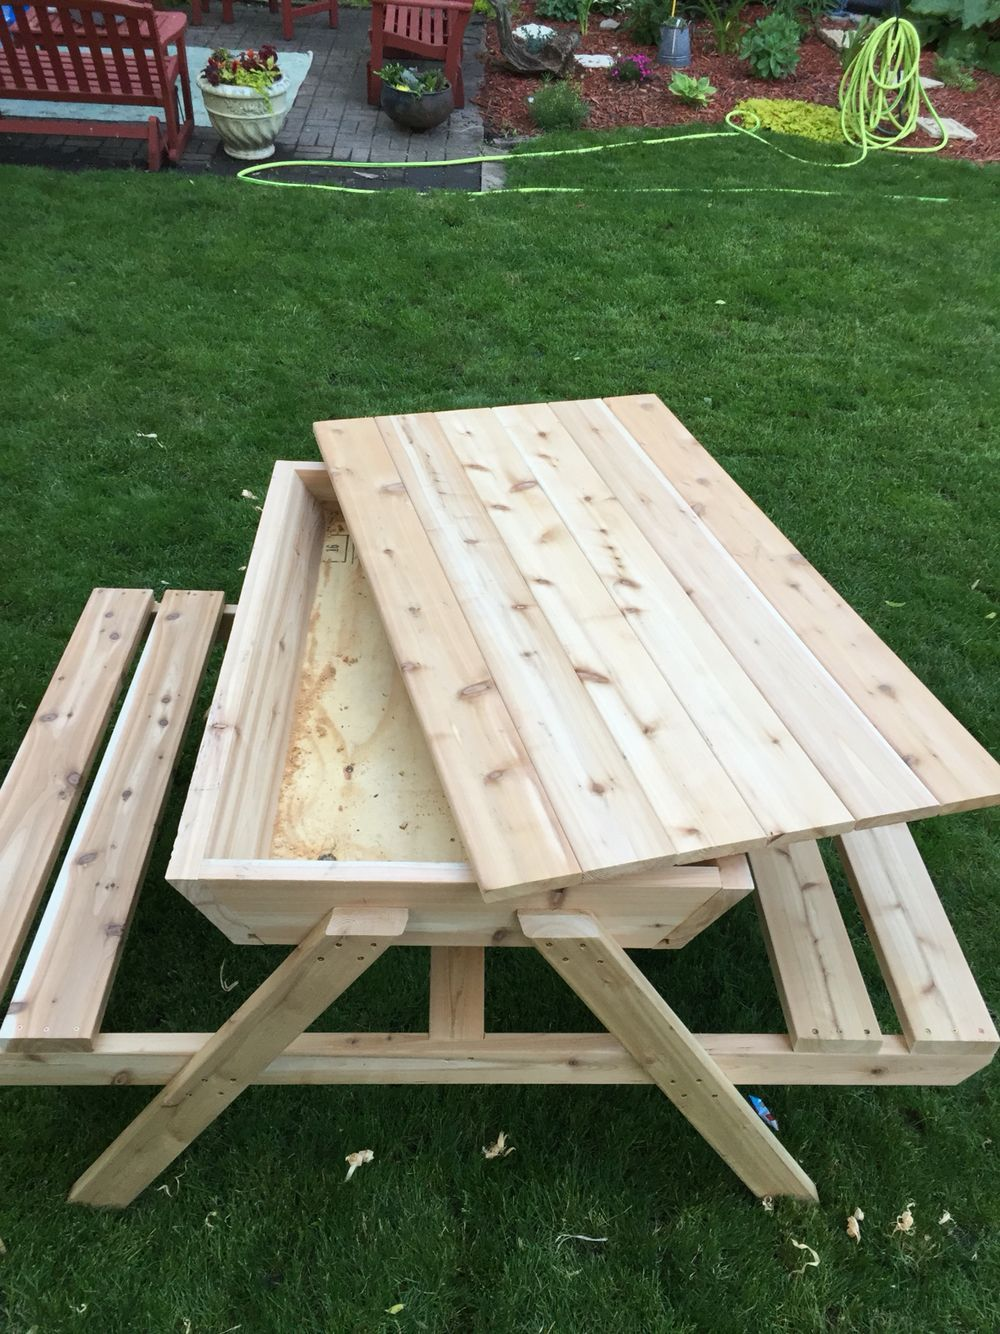 Kids Picnic Table Sand Box Cedar Picnic Table Ice Chest Picnic Tables Keep The Cats Out Sandbox Kids Woodworking Woodworkingforkids Traarbete Ideer Tra